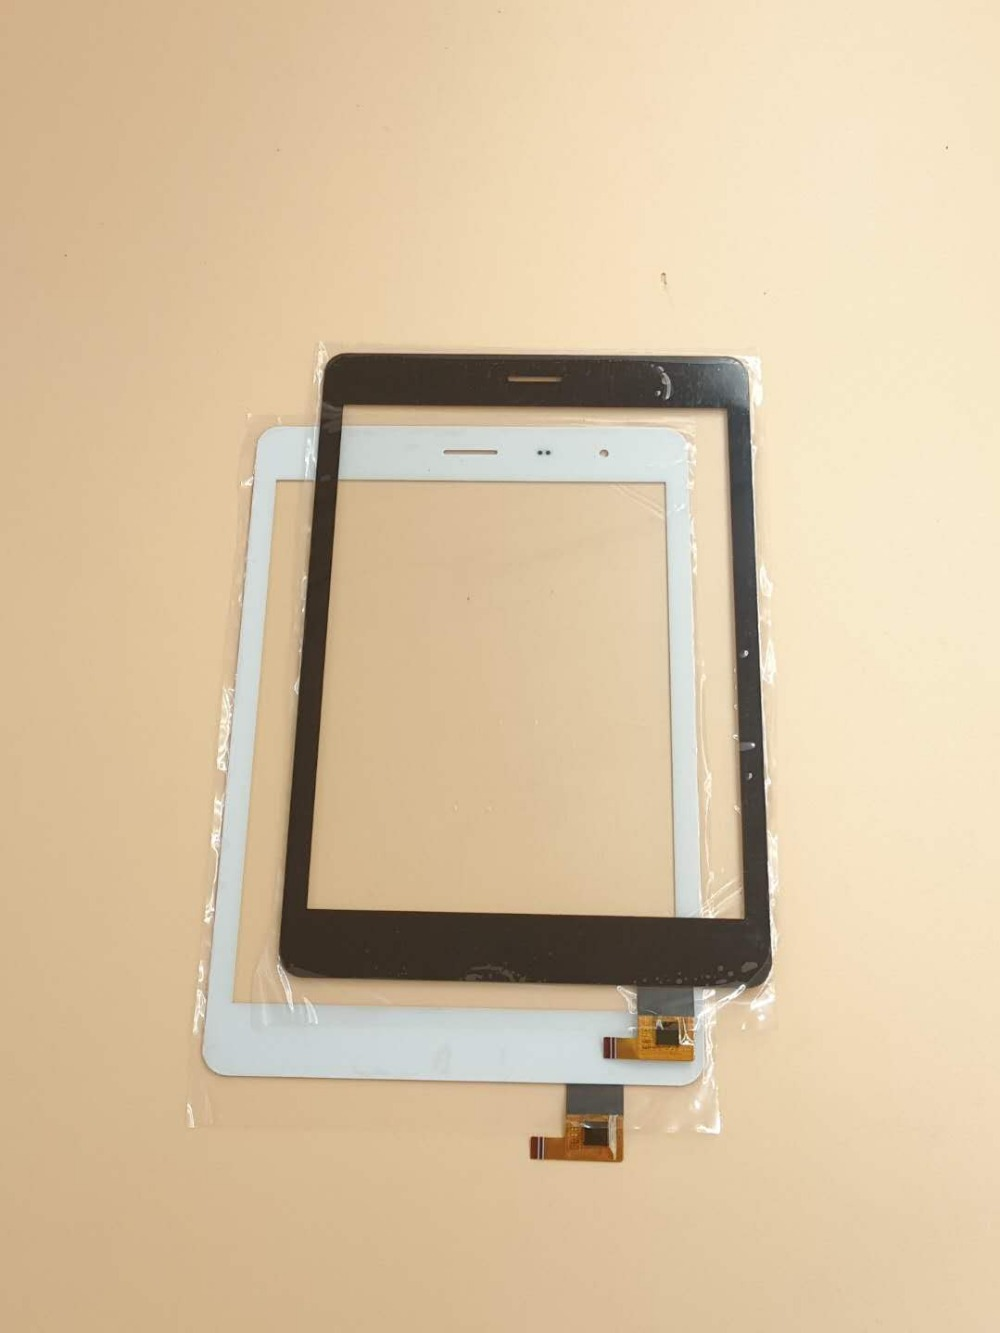 7.85 inch For Perfeo 7919-IPS 3G Tablet Capacitive touch screen panel Digitizer Glass Sensor Replacement Free Shipping new touch screen capacitive screen panel digitizer glass sensor replacement for 7 inch irbis tz55 3g tablet free shipping